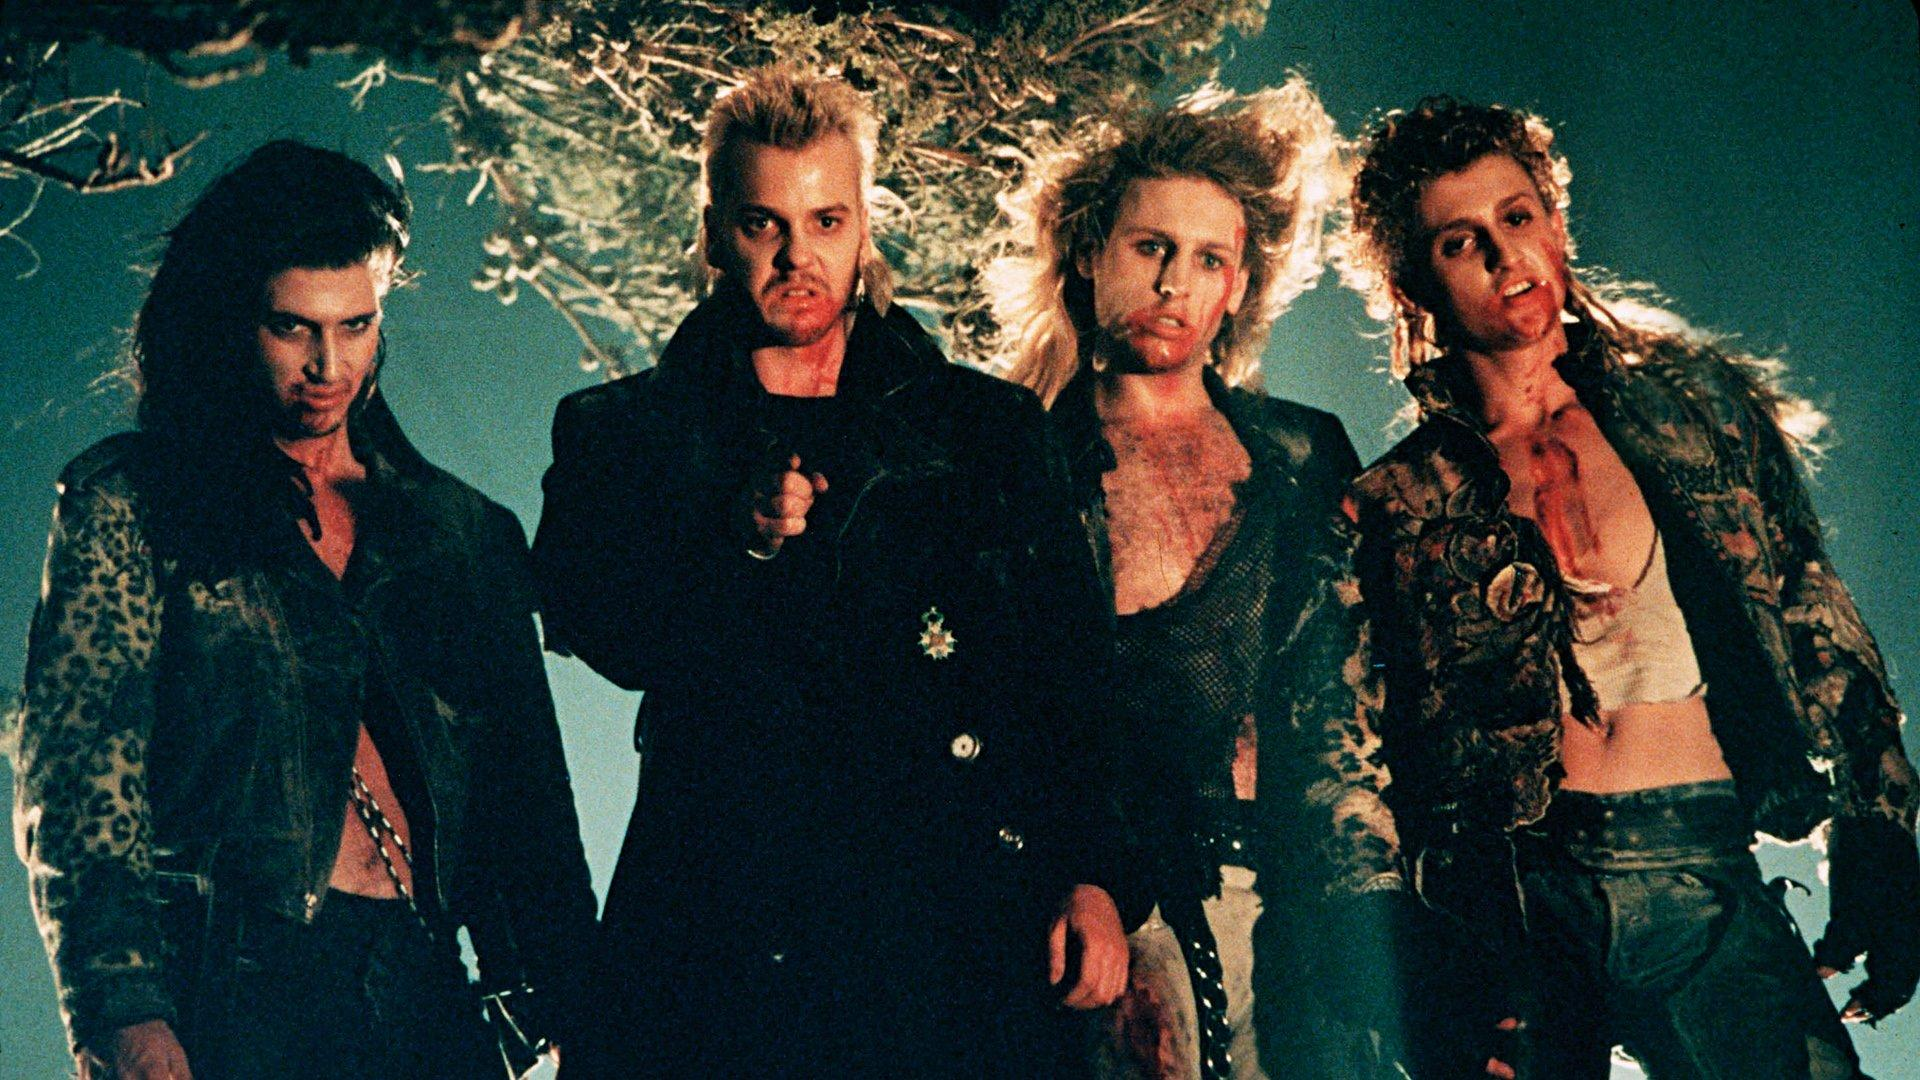 The Lost Boys Where Are They Now